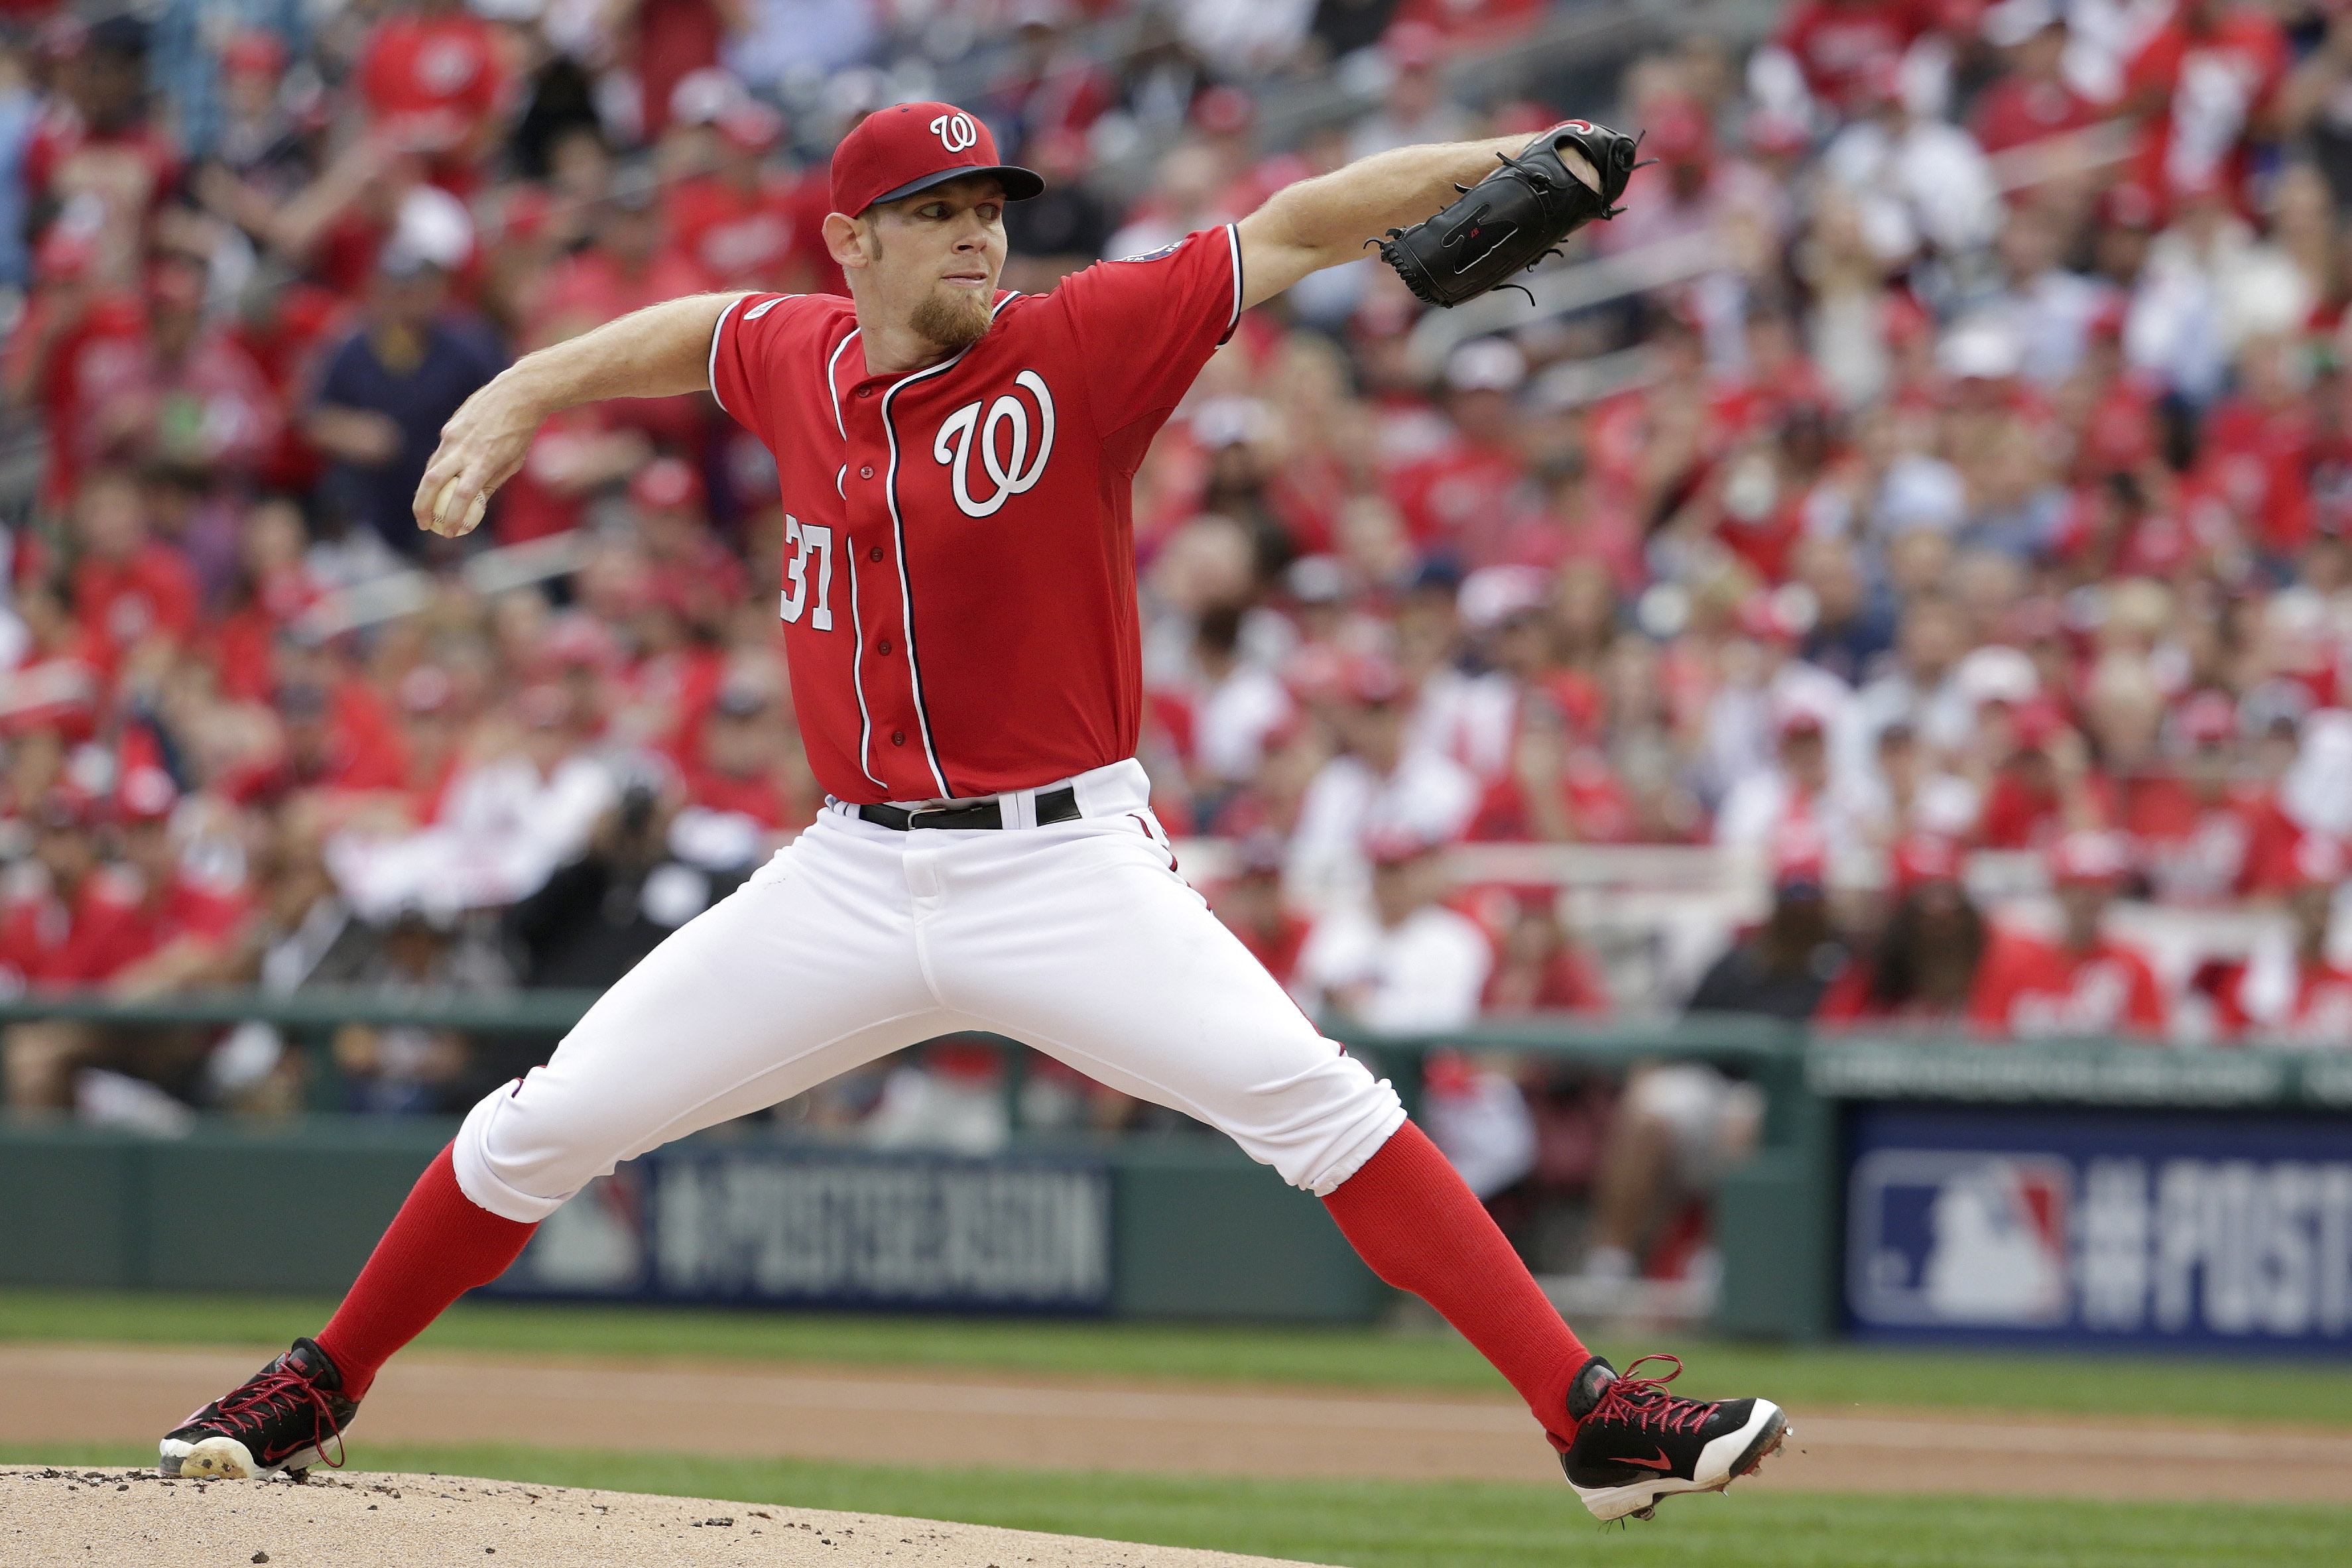 Nats sign Strasburg to 7-year extension